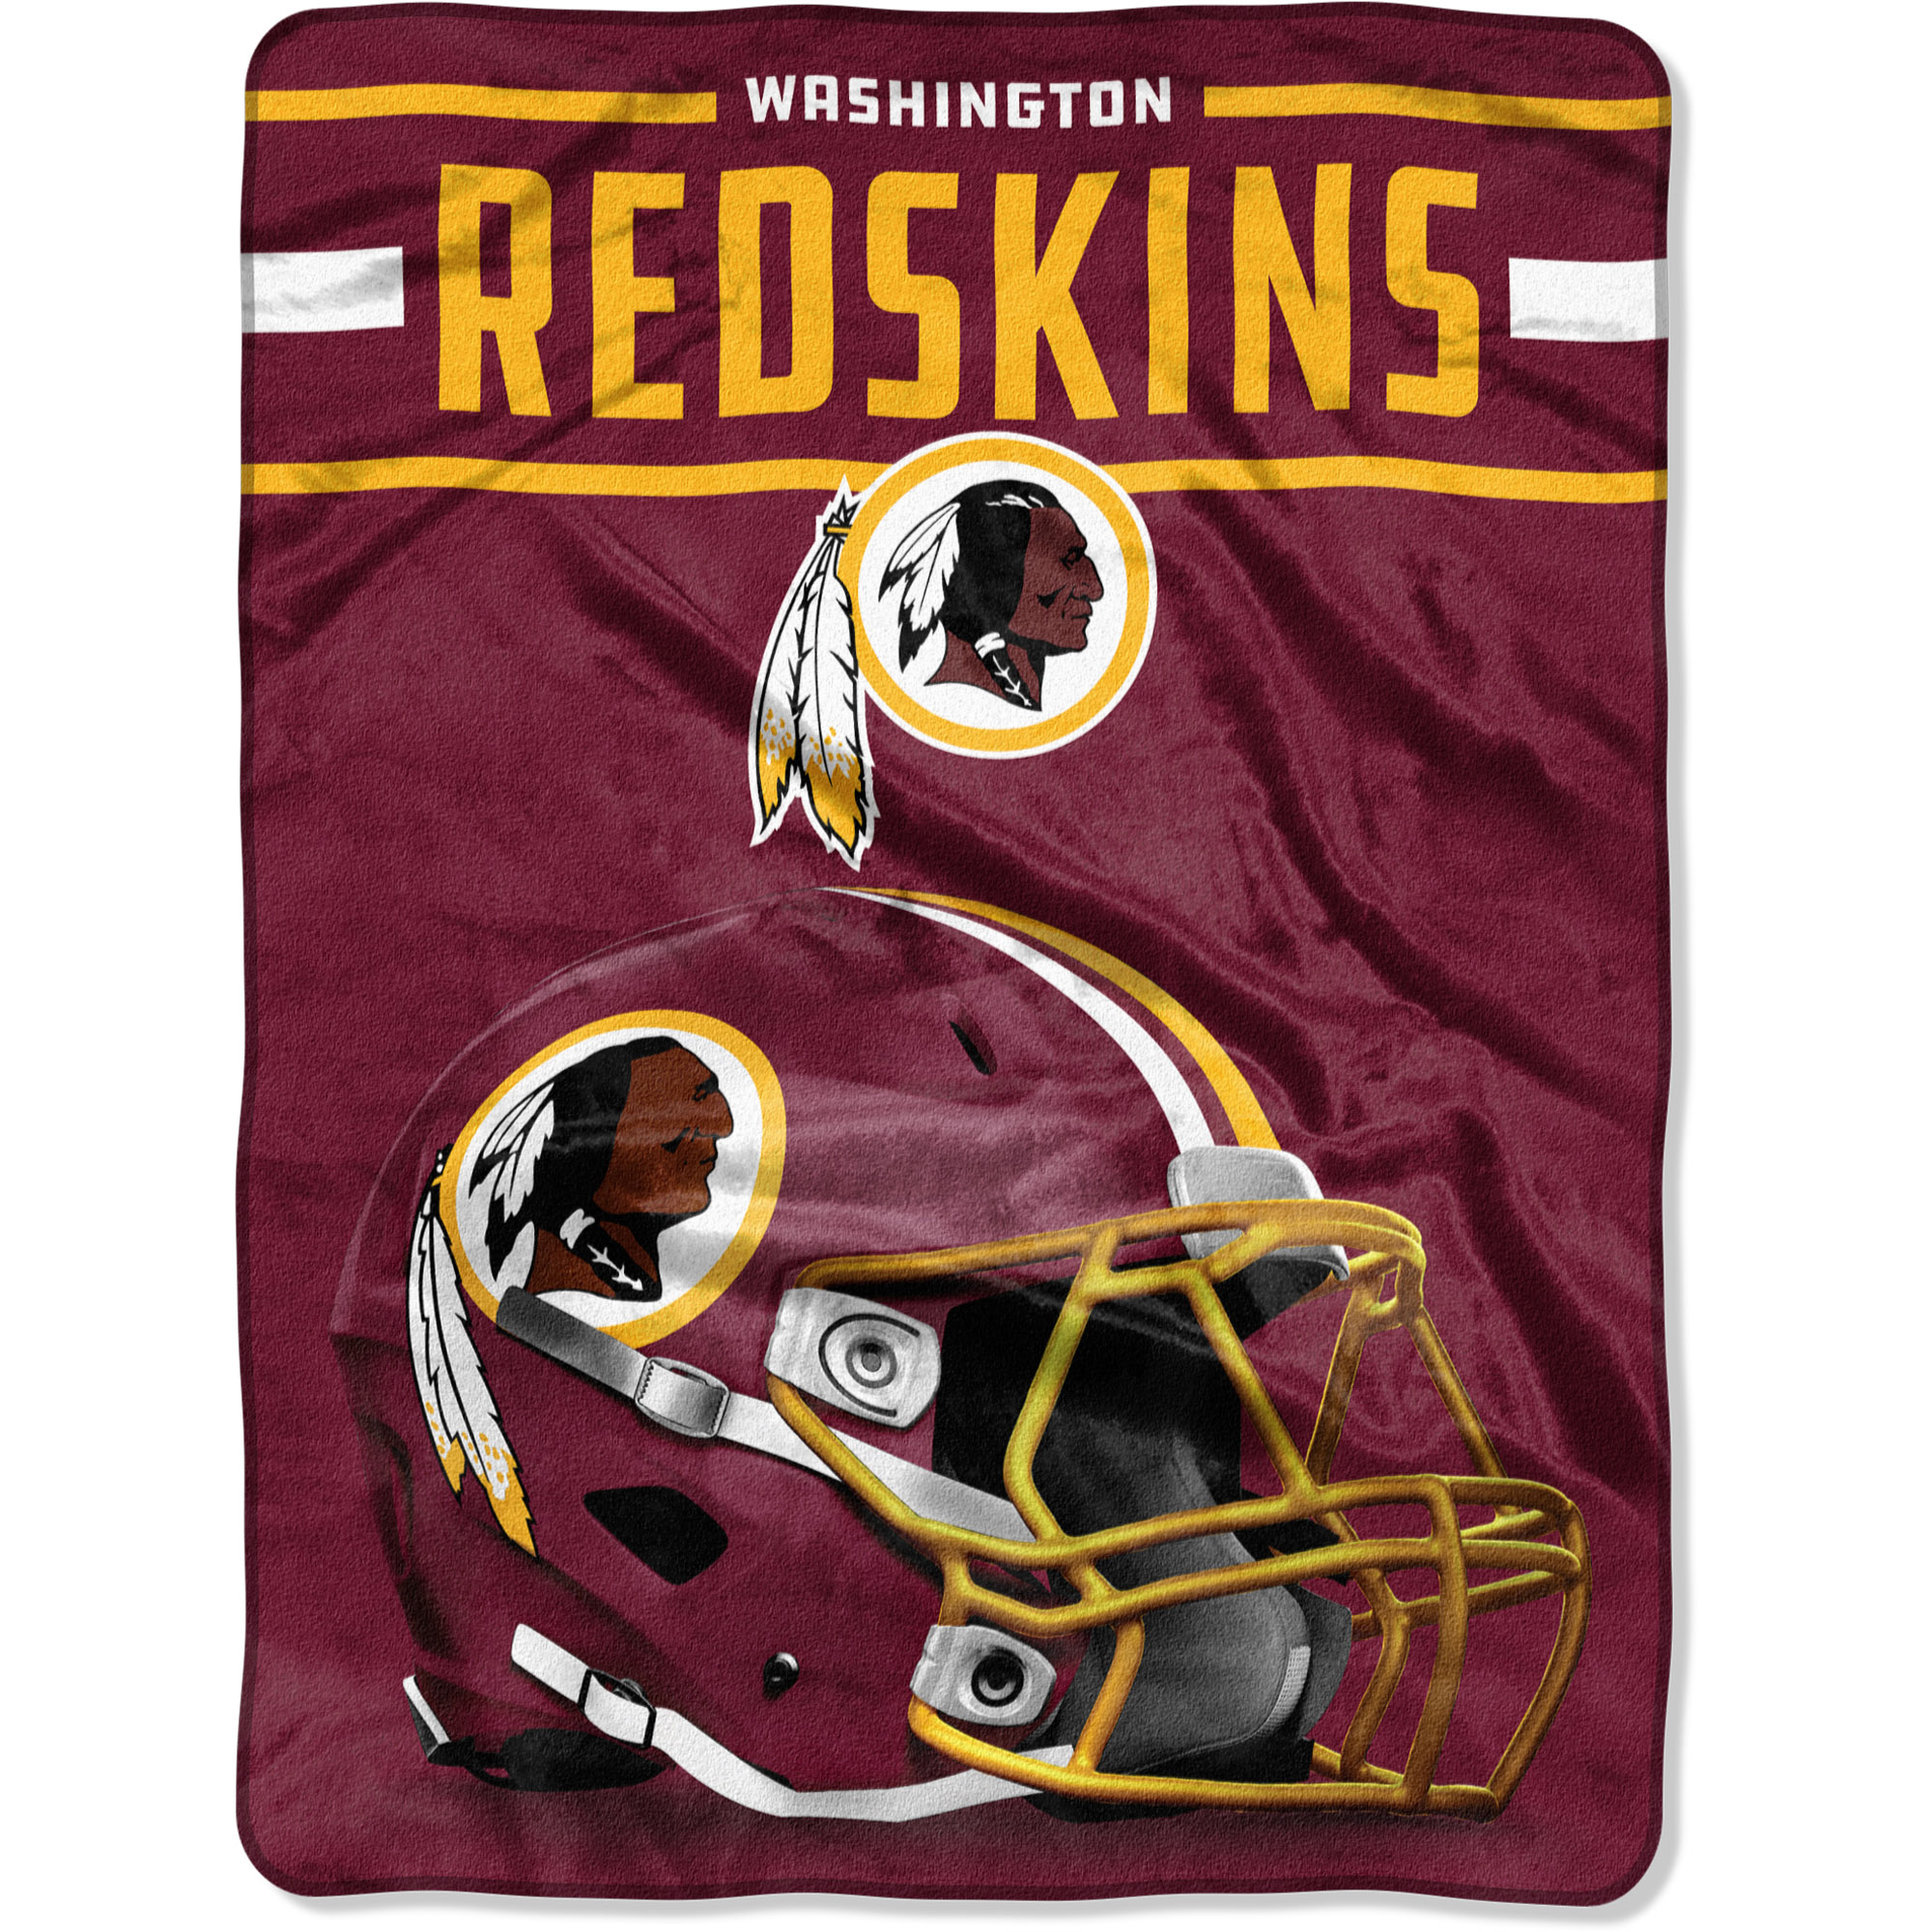 "Washington Redskins The Northwest Company 60"" x 80"" Jet Sweep Silk Touch Throw Blanket - No Size"